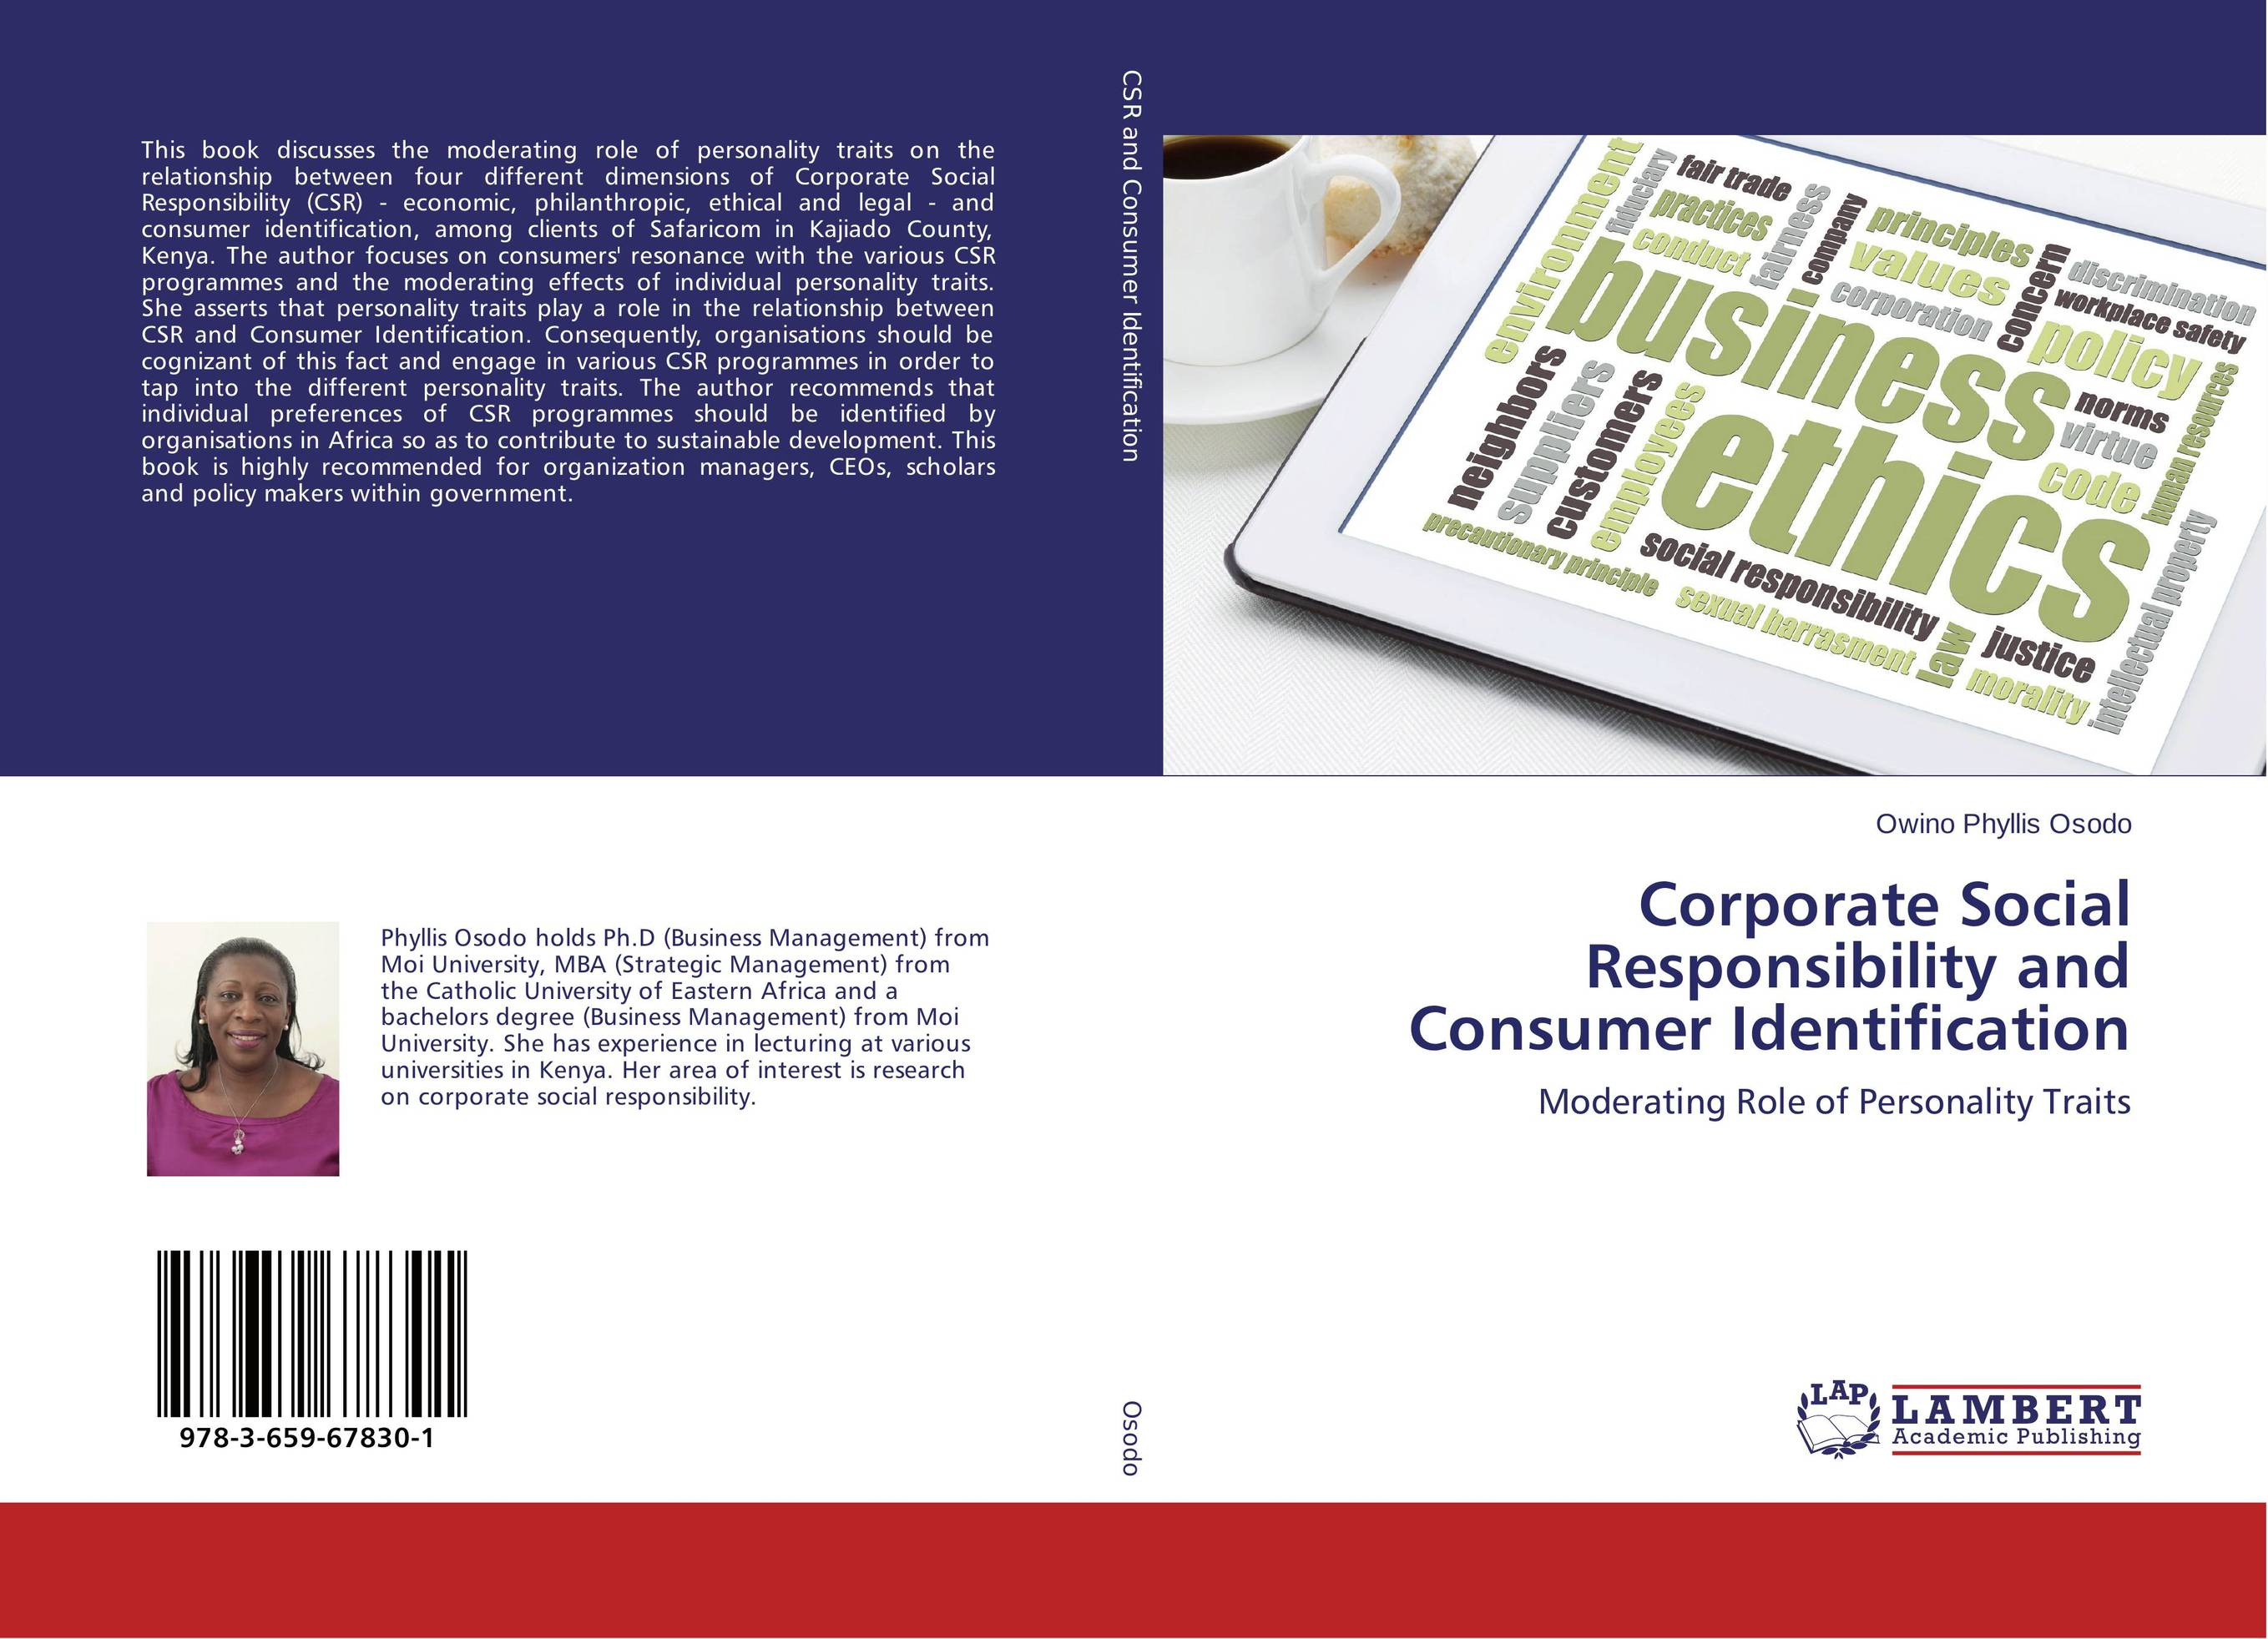 Corporate Social Responsibility and Consumer Identification personality traits and interpretaion